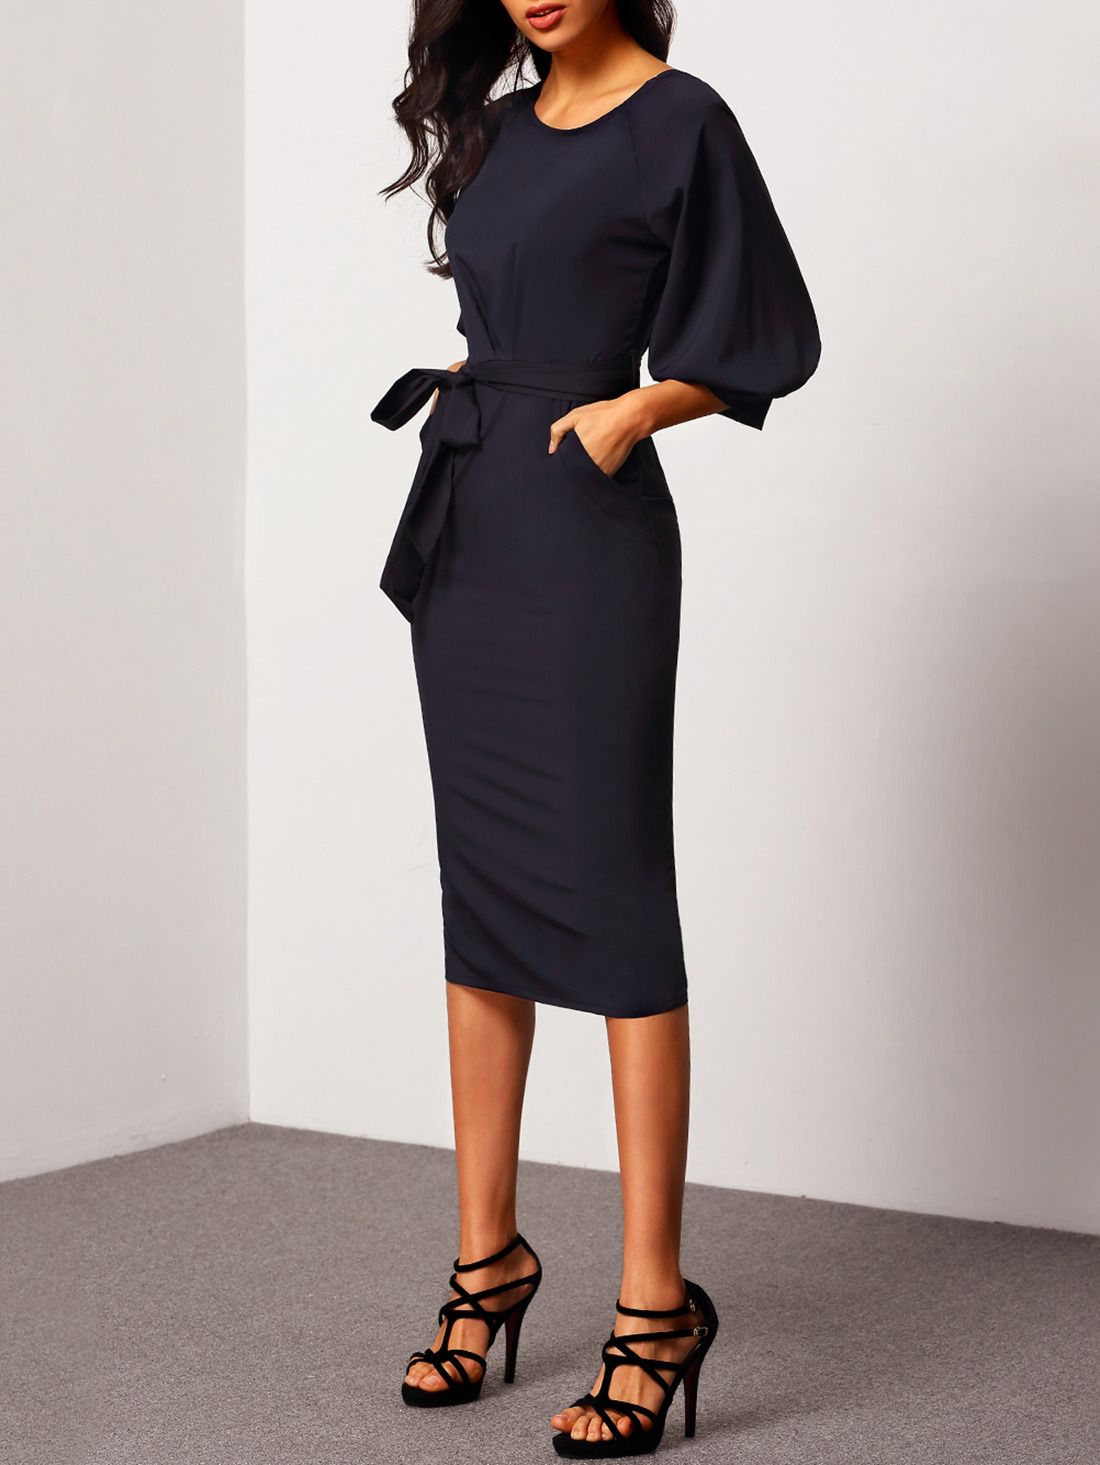 Puff Sleeve Dress With Belt | Dress online, Lbd and Shopping